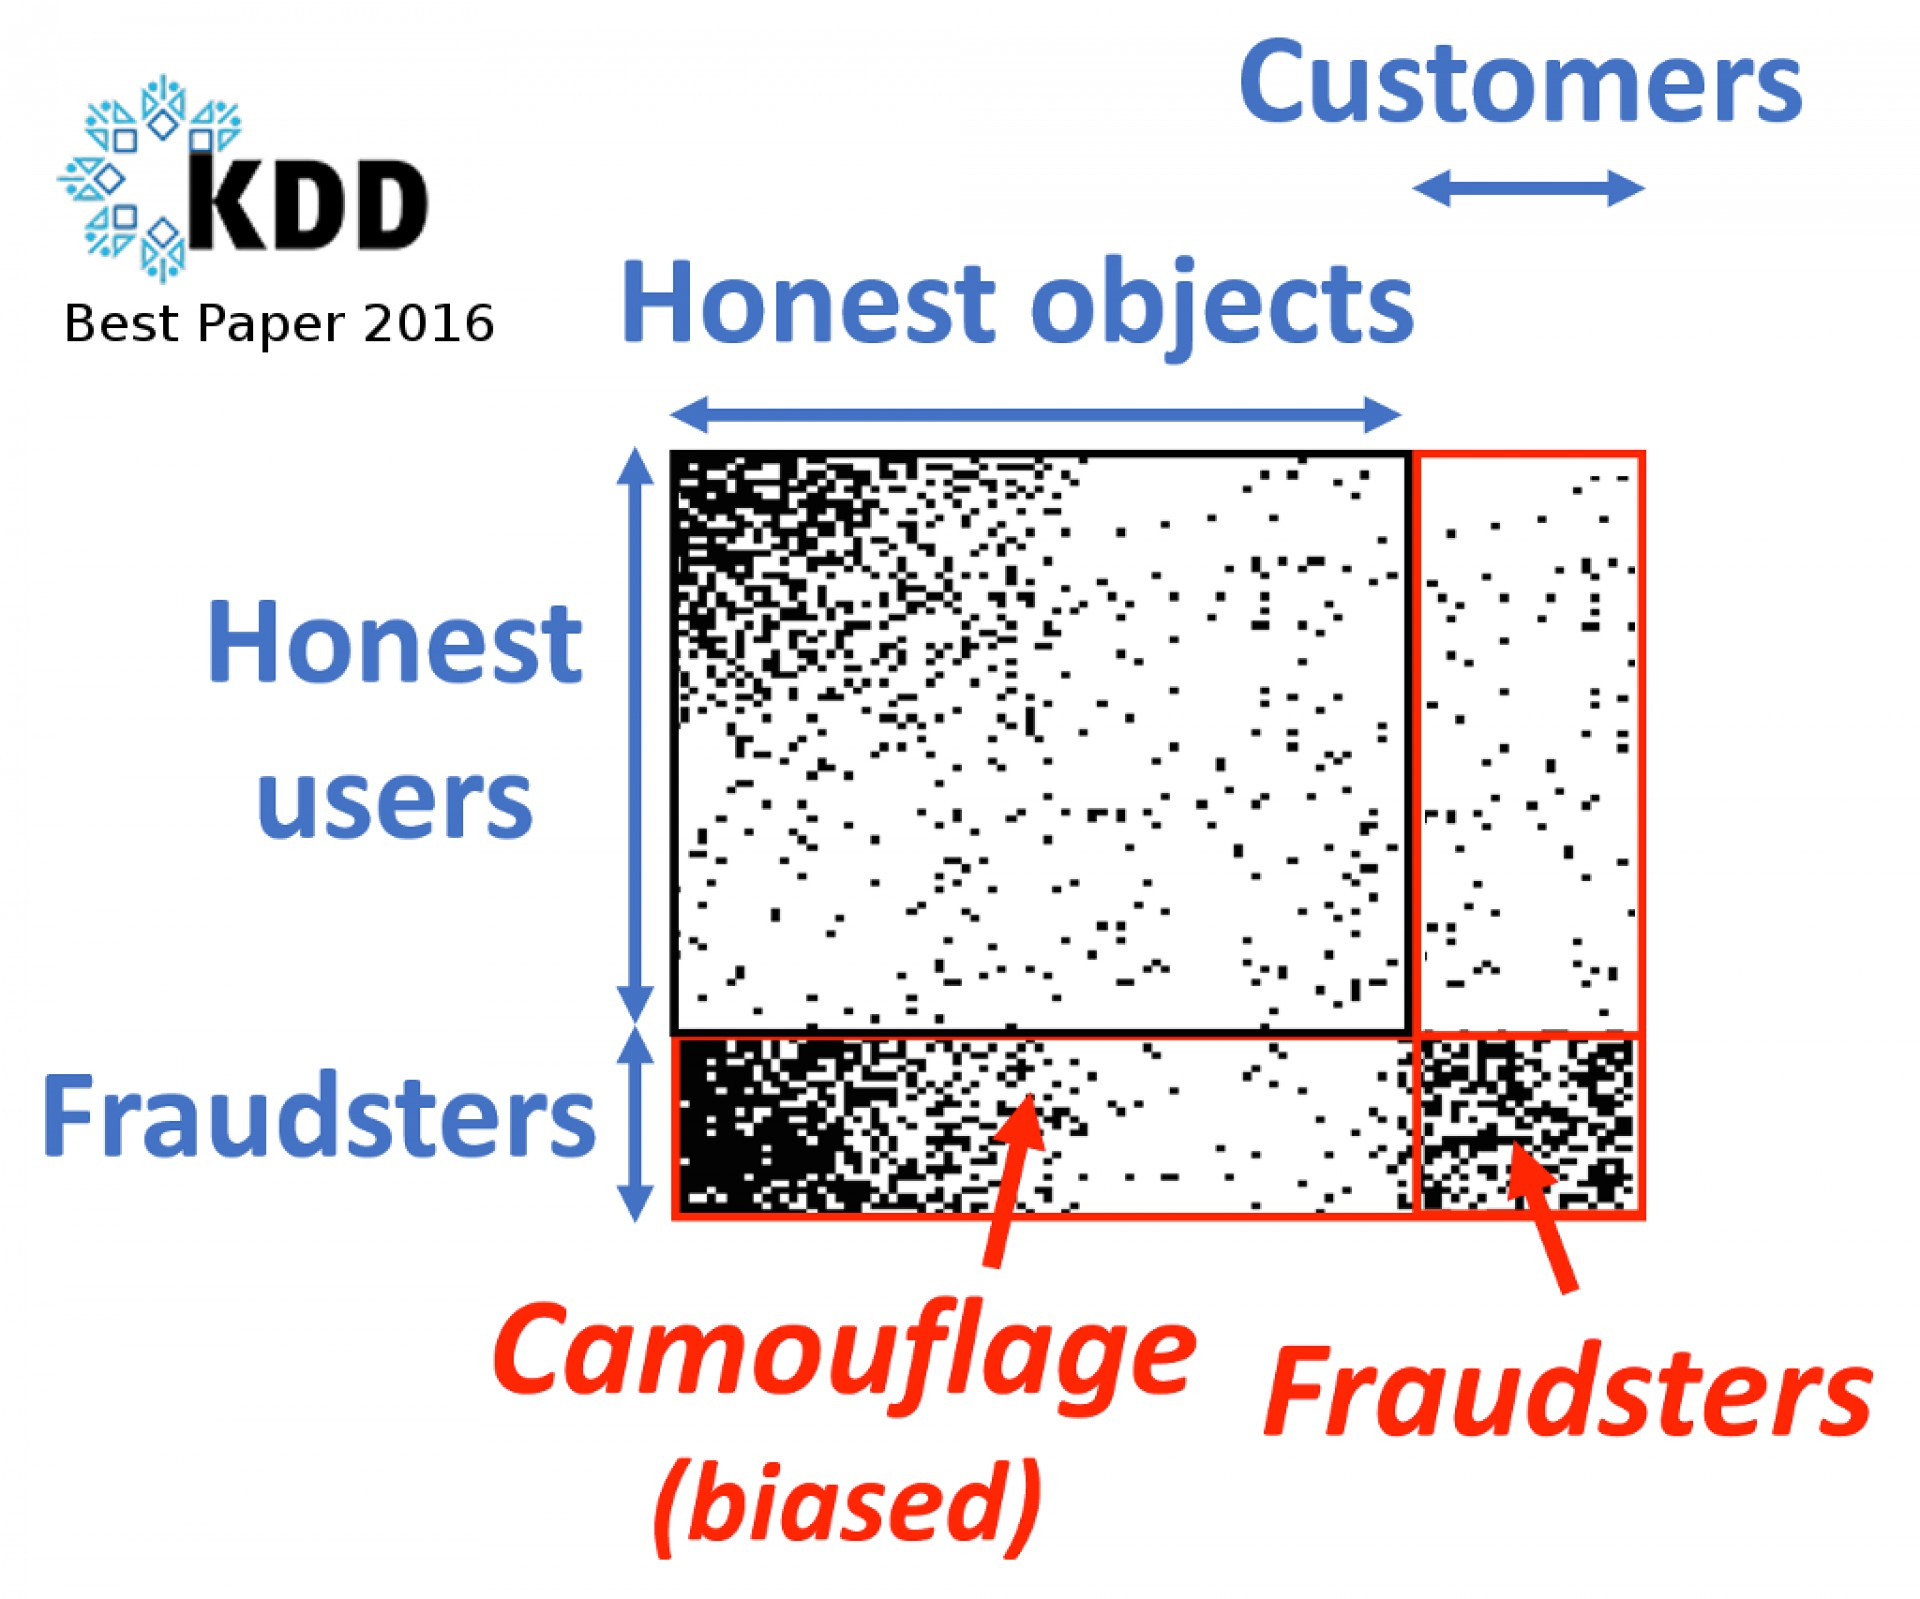 005 Camouflage Sigkdd2016 Research Paper Best Imposing Database 1920